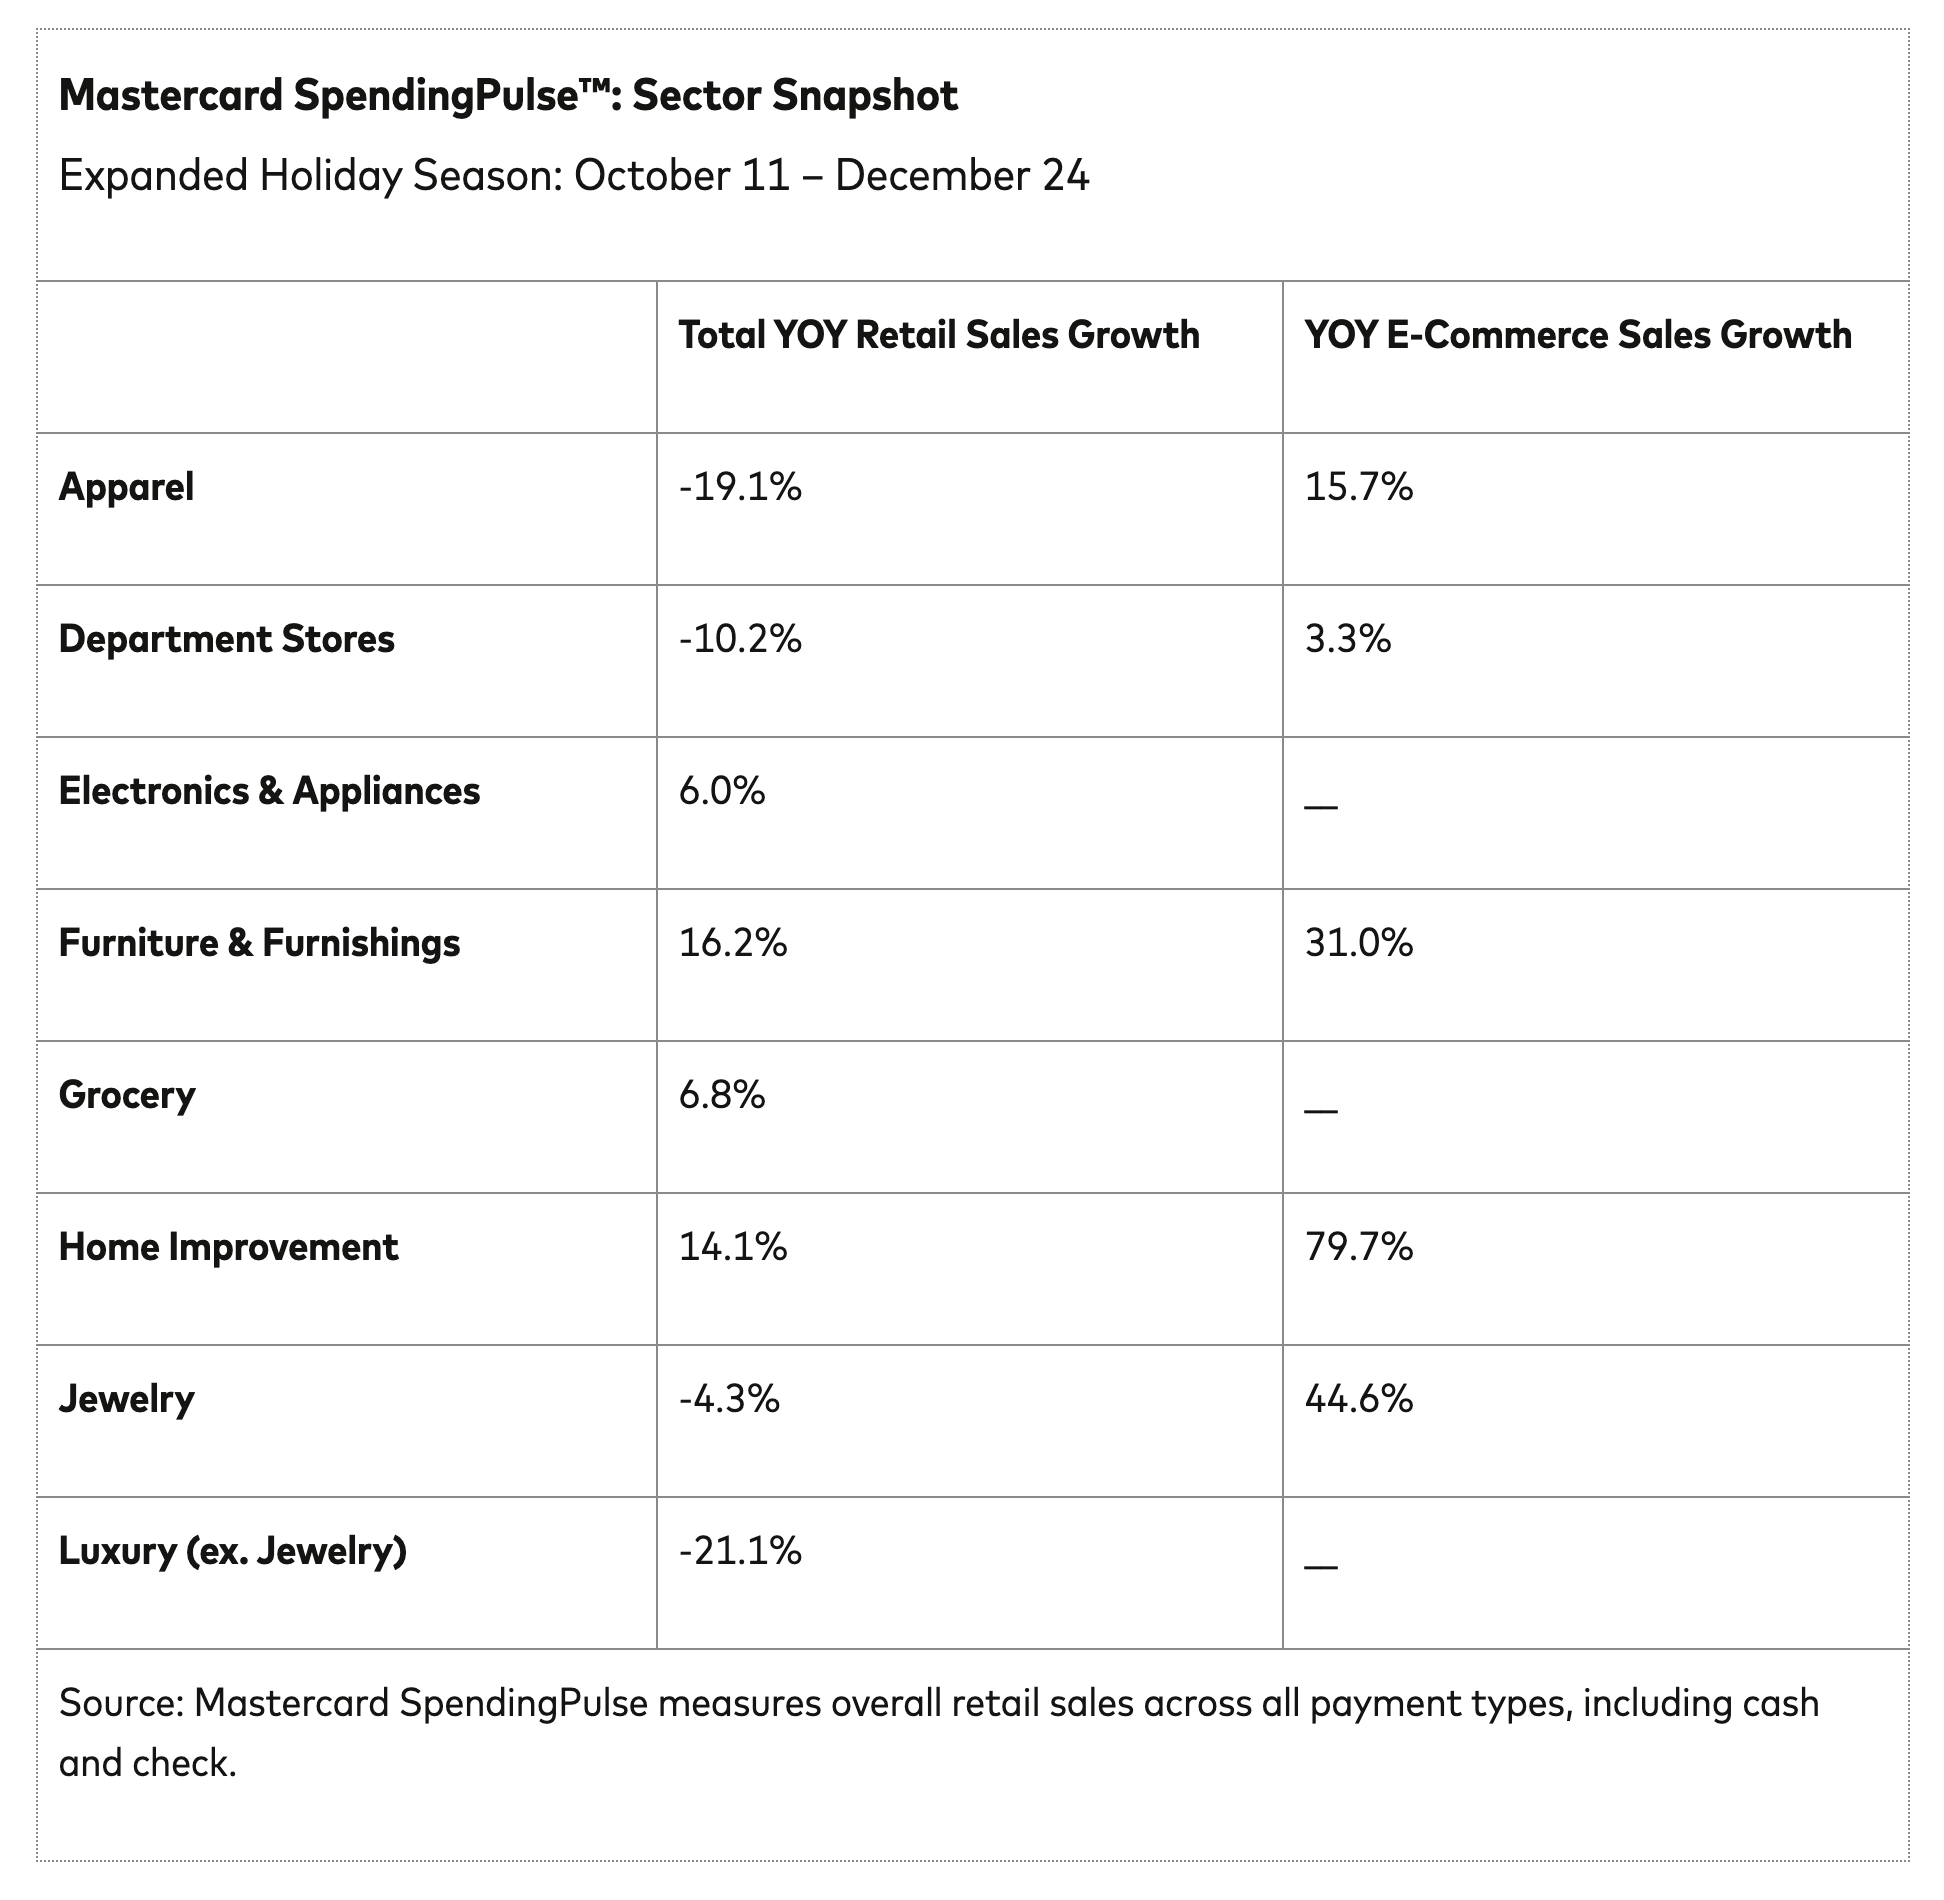 Mastercard SpendingPulse: Sector Snapshot table